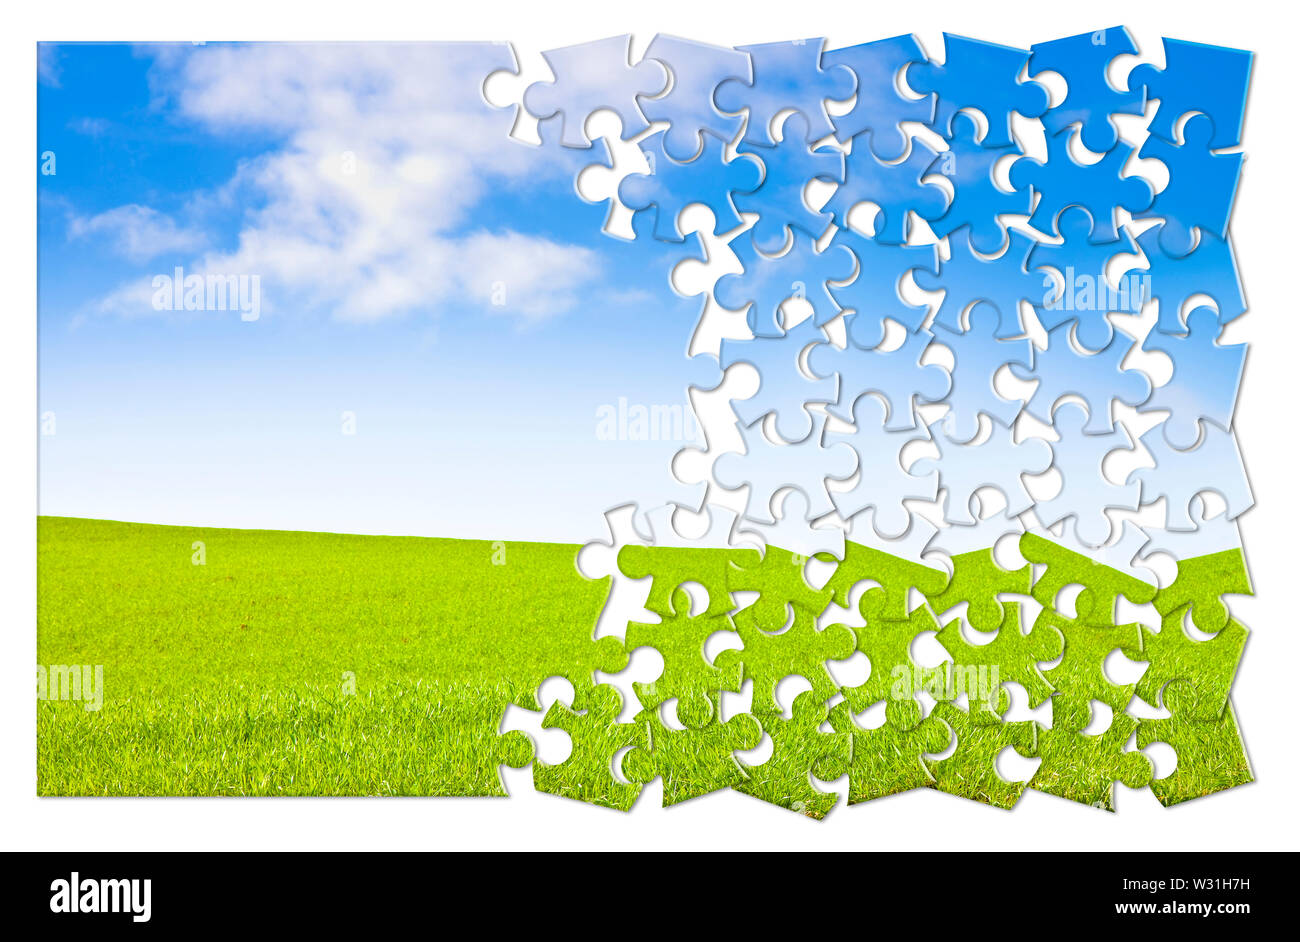 Build your serenity - concept image in puzzle shape - Stock Image